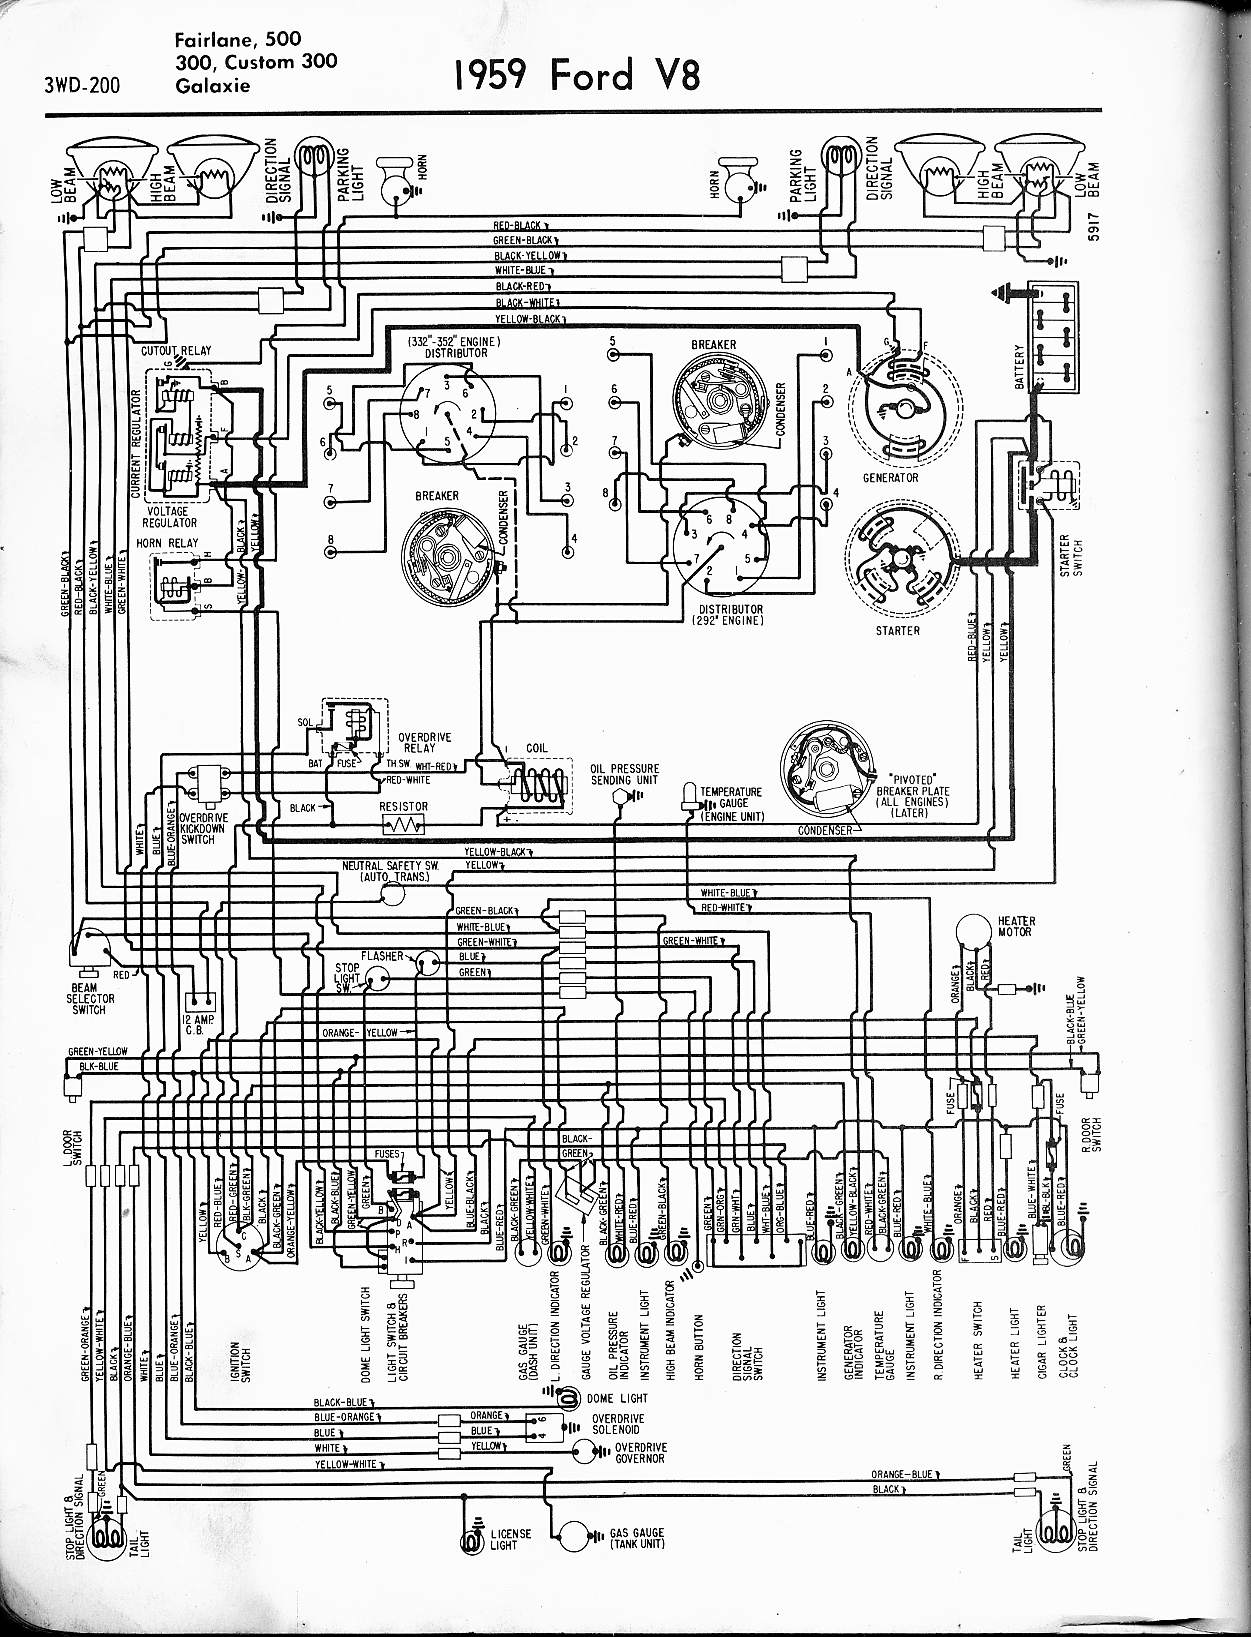 1964 Chevy Truck Alternator Wiring Diagram Free Download 1966 Pontiac Catalina 1959 V8 Fairlane 500 300 Custom 57 65 Ford Diagrams